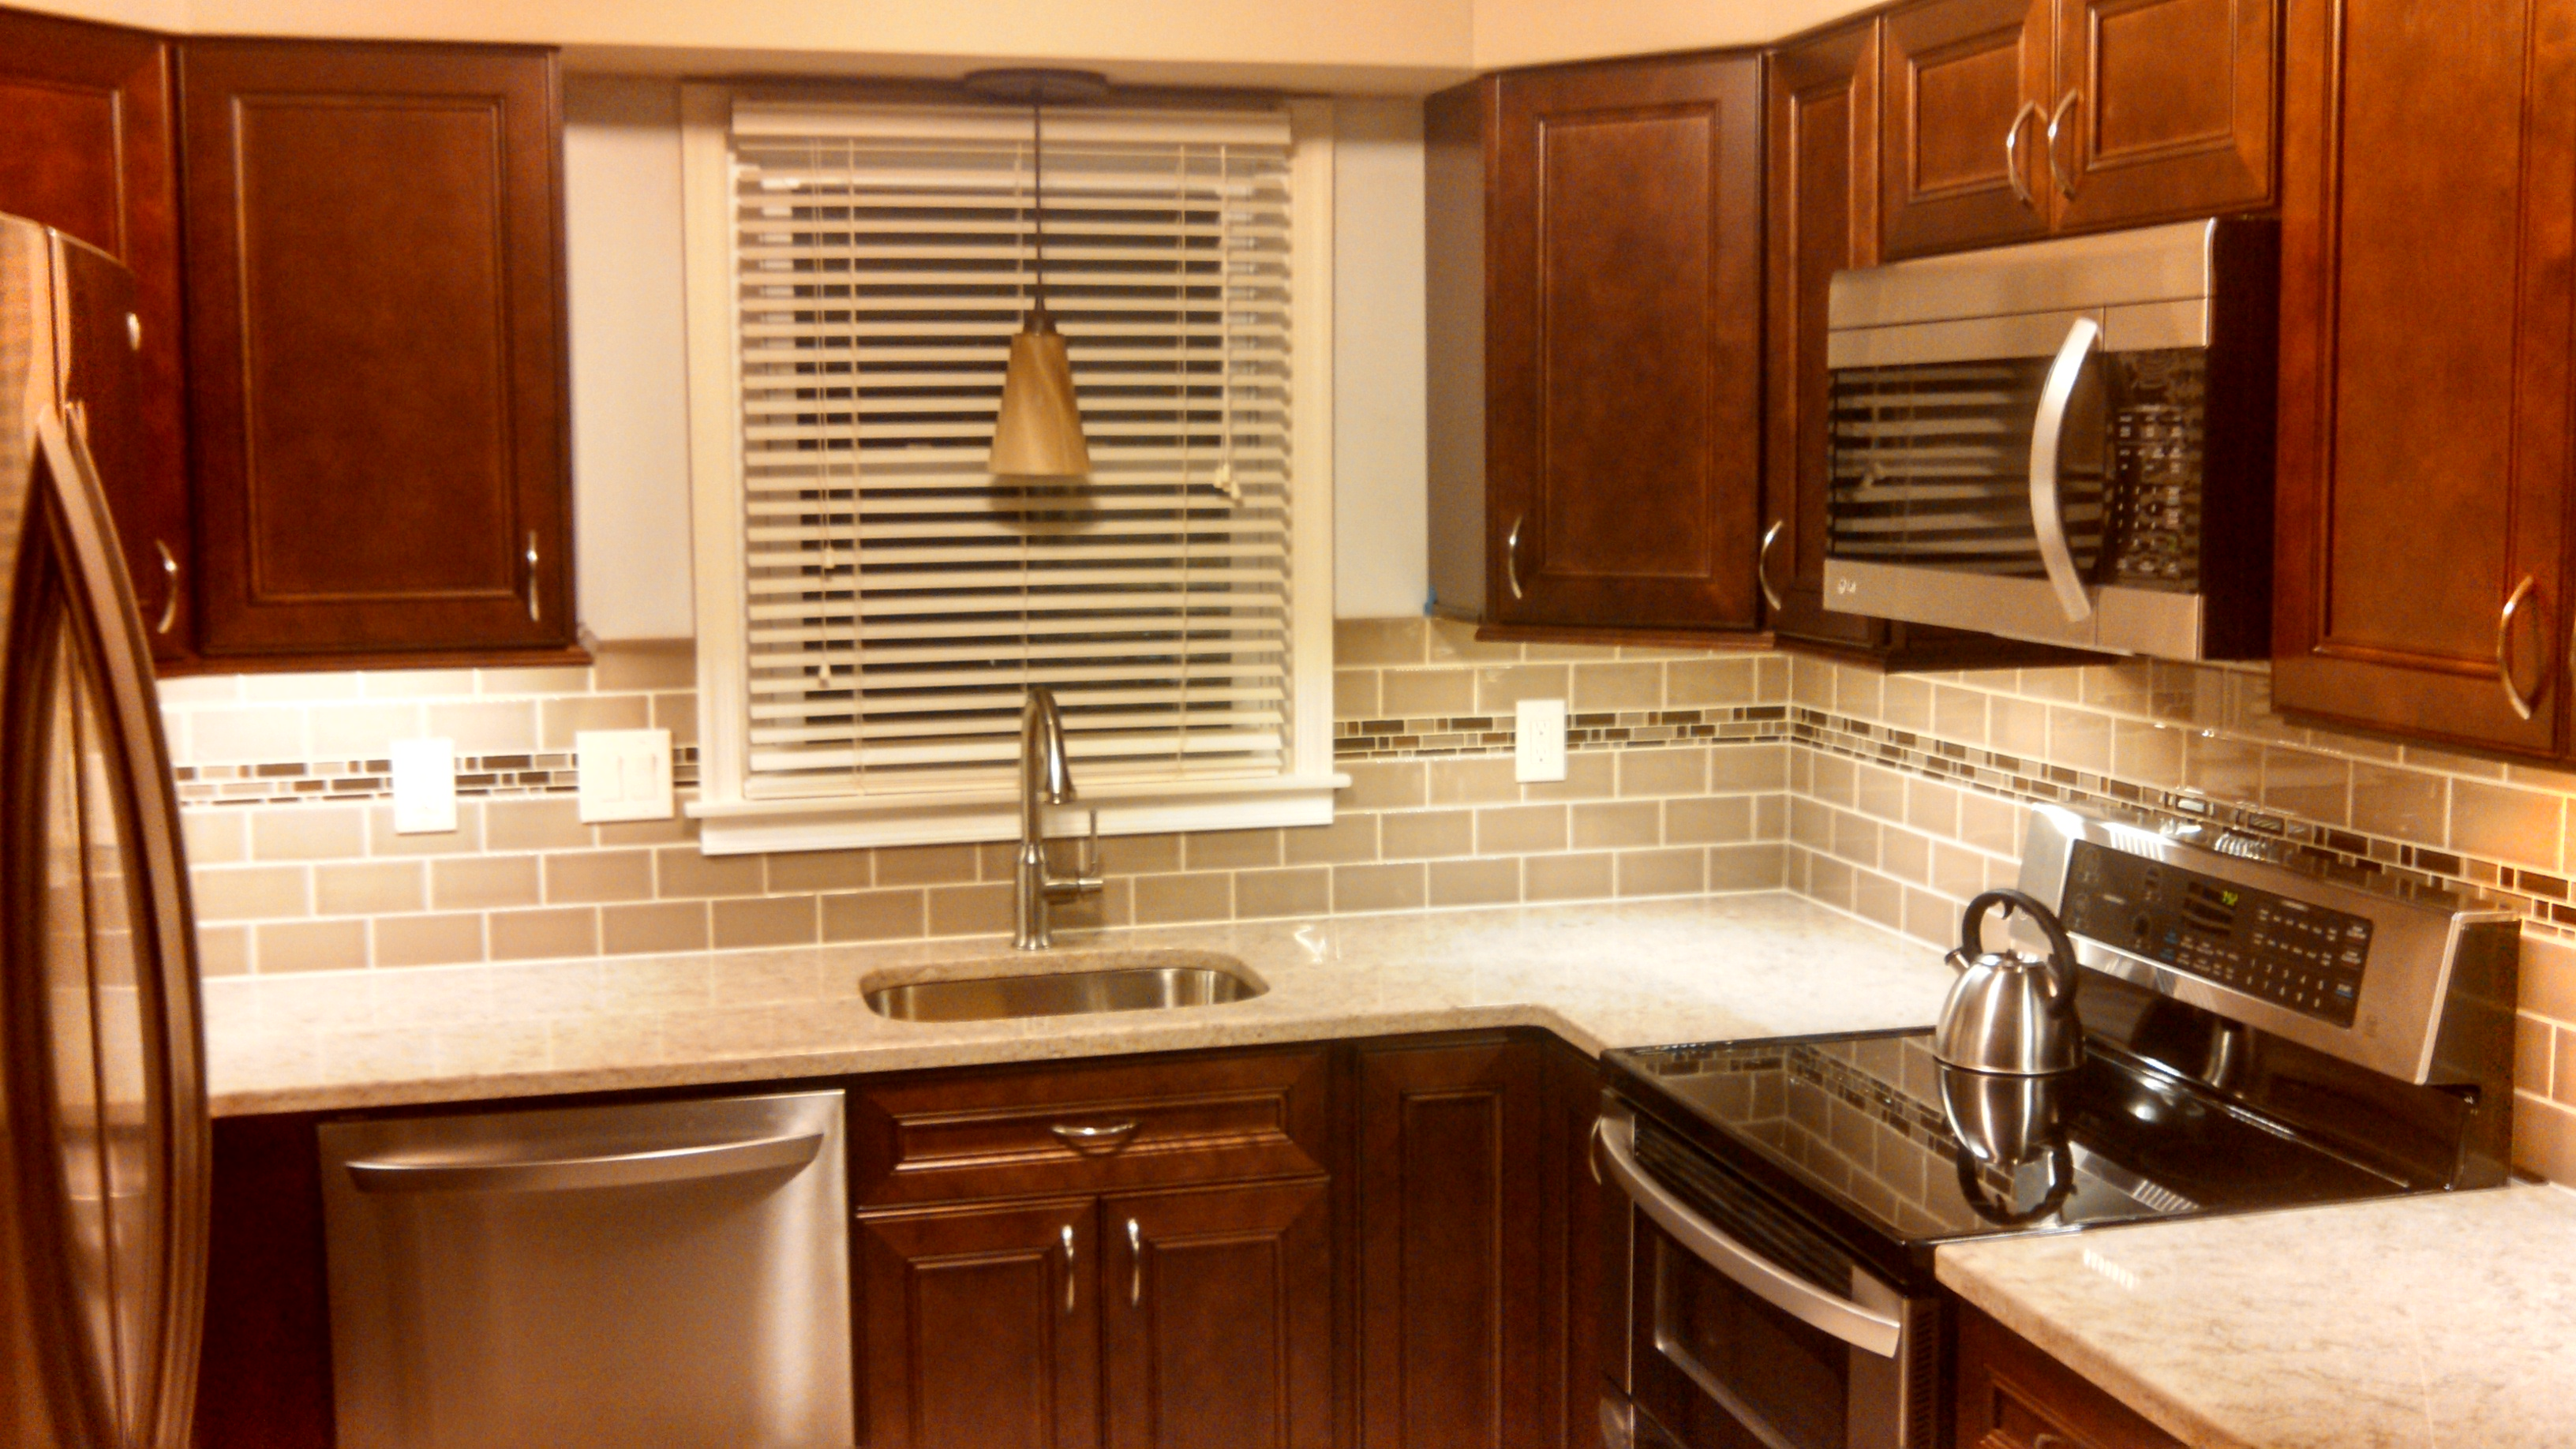 Kitchen Remodeling Project In Baltimore Maryland